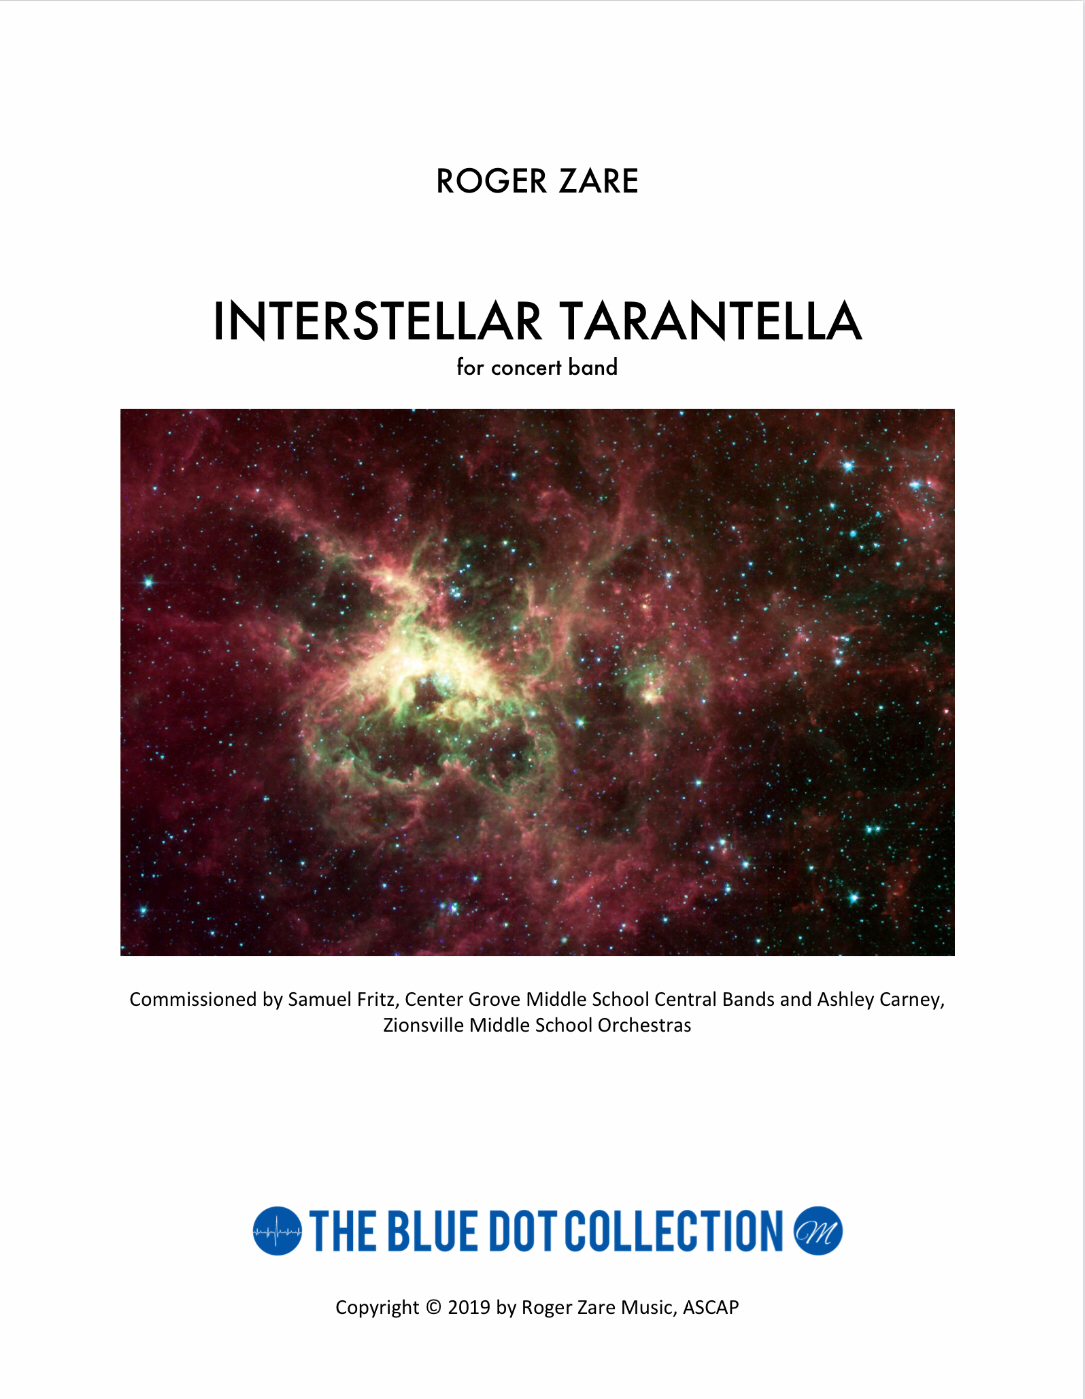 Interstellar Tarantella   by Roger Zare